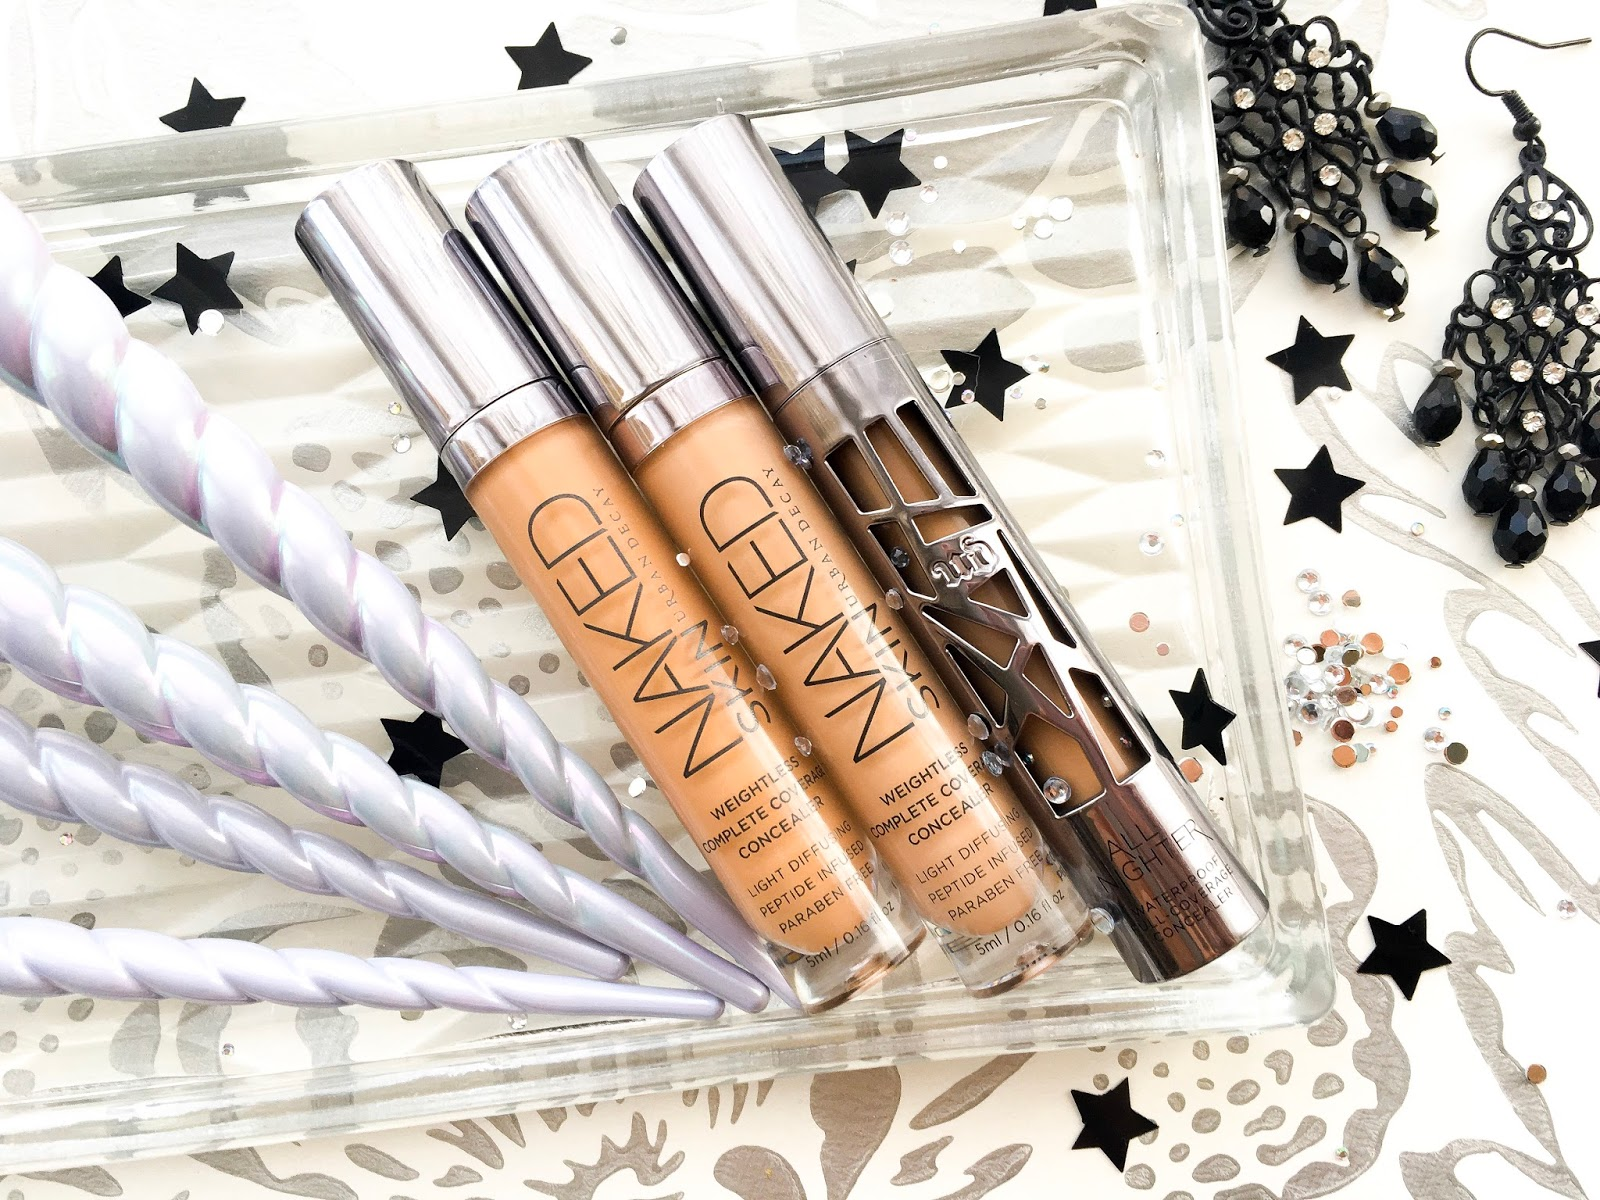 Urban Decay All Nighter Concealer vs Naked Skin Concealer, which urban decay concealer is best for under eye area, urban decay all nighter vs naked skin, urban decay med dark warm, urban decay medium neutral